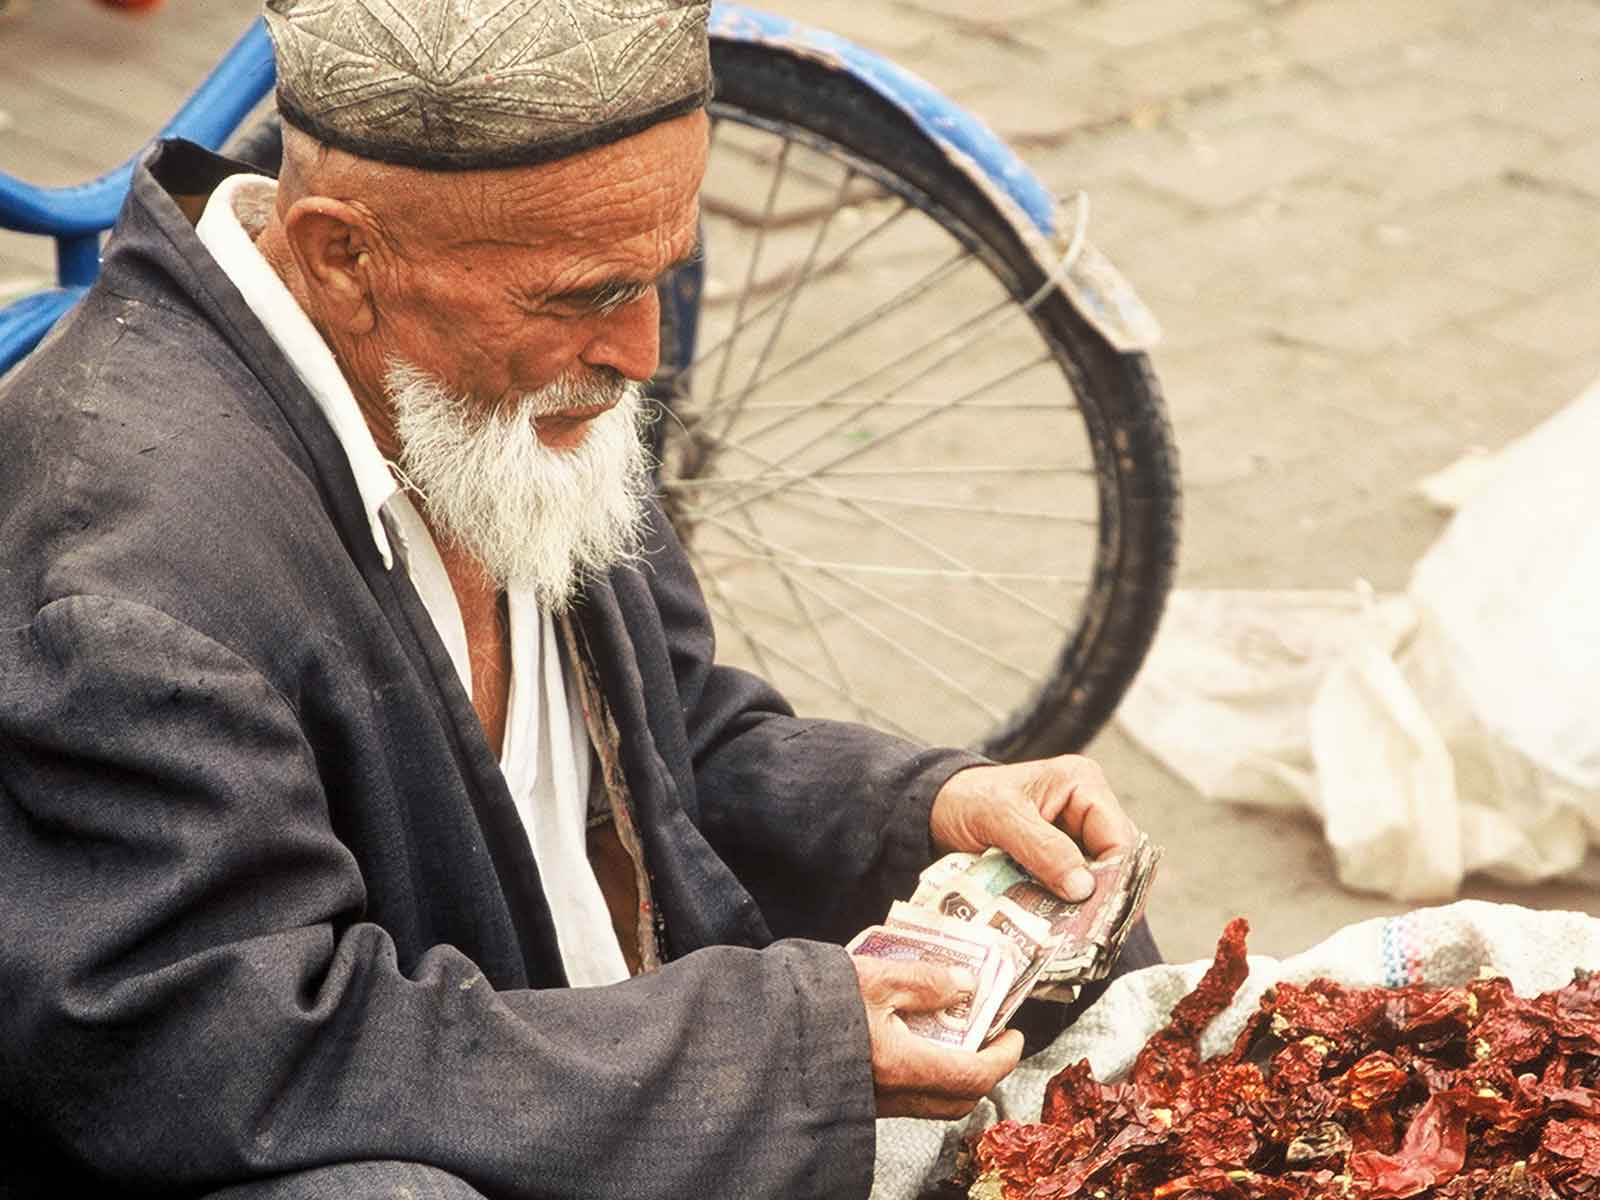 Chili Peppers - Kashgar Bazaar - China Silk Road Photo Journal - Dr Steven Andrew Martin